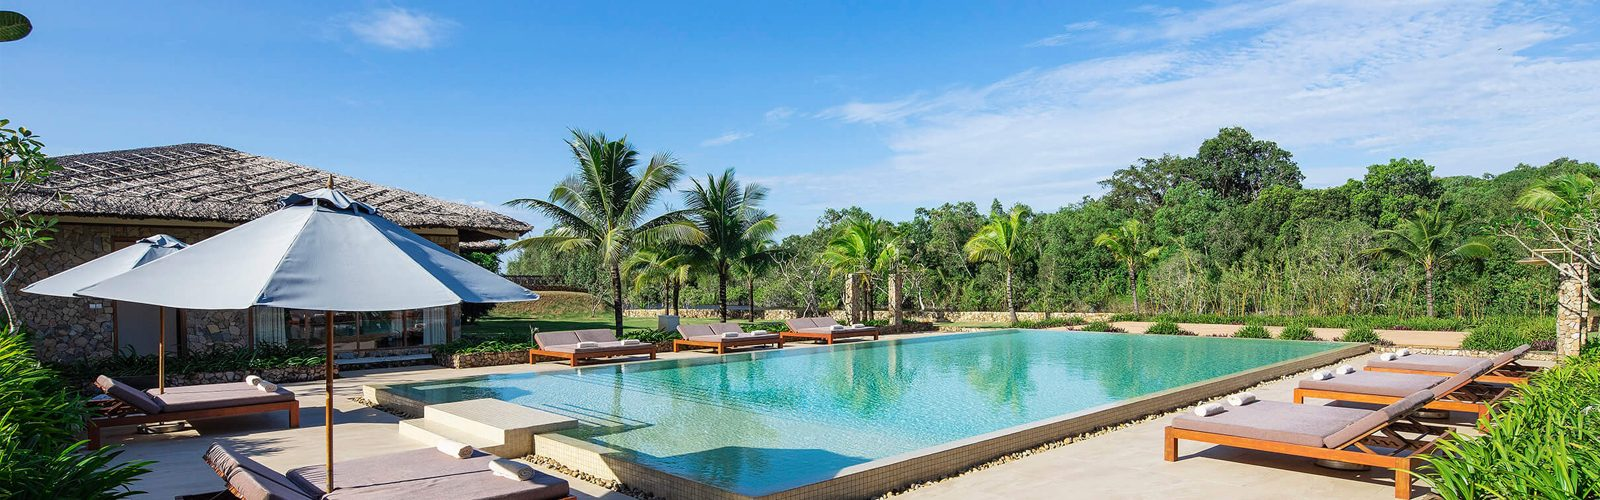 Luxury Vietnam Holiday Packages Fusion Resort Phu Quoc Review Header